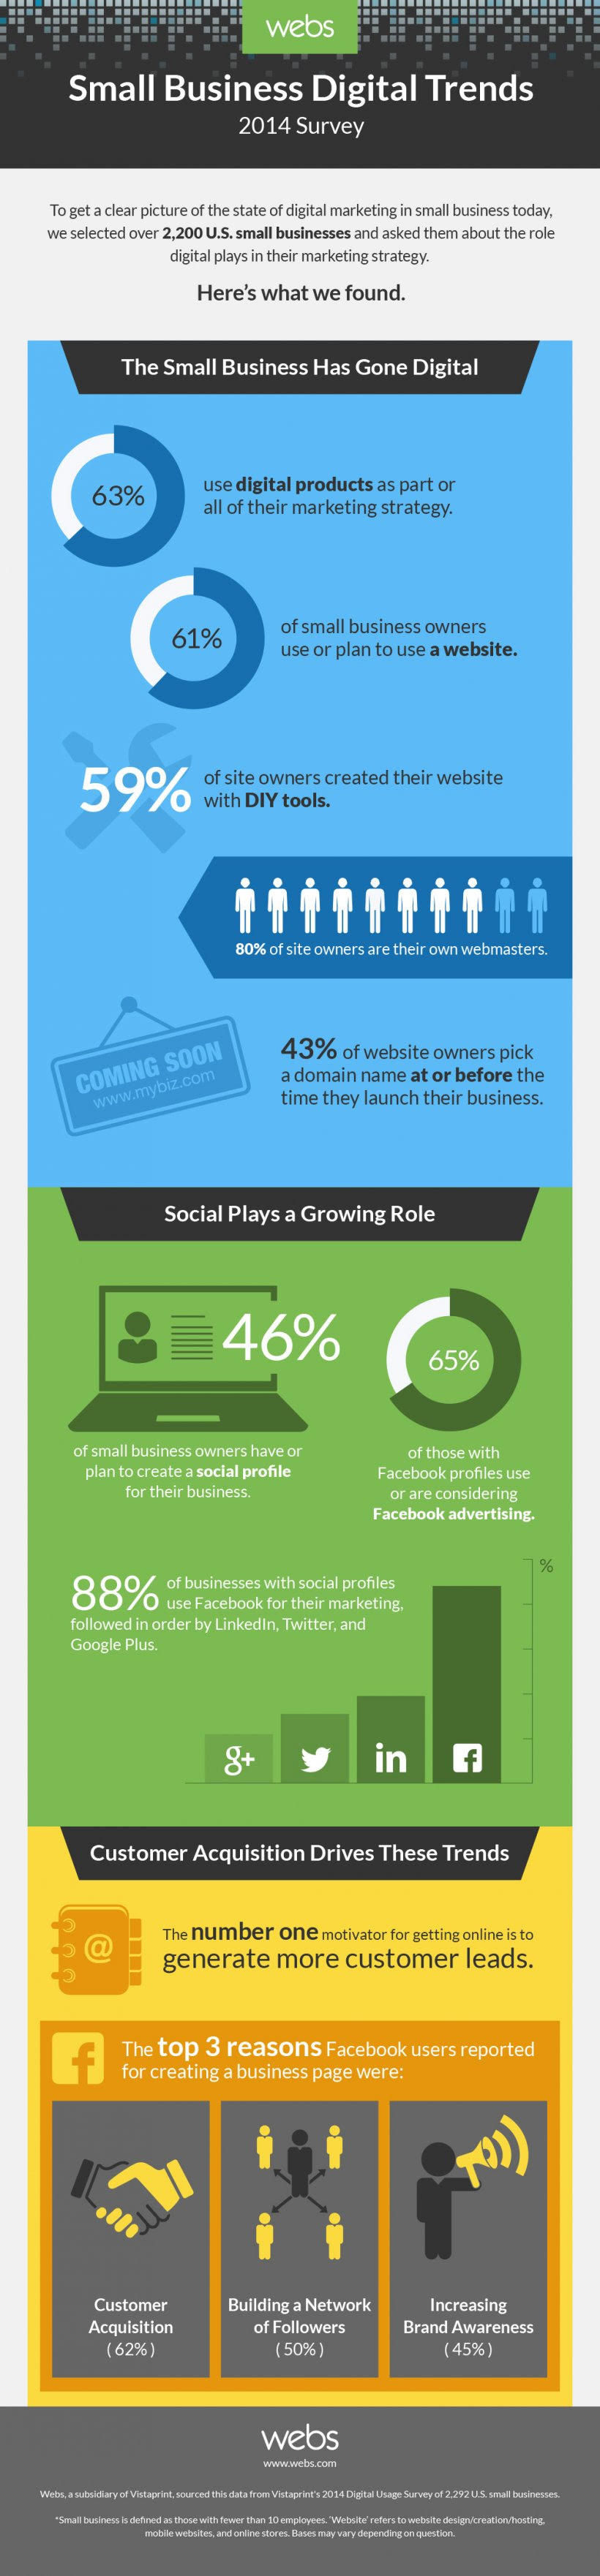 How Small Businesses Have Gone Digital (Infographic) image 6e6lZ4l3 820x35231